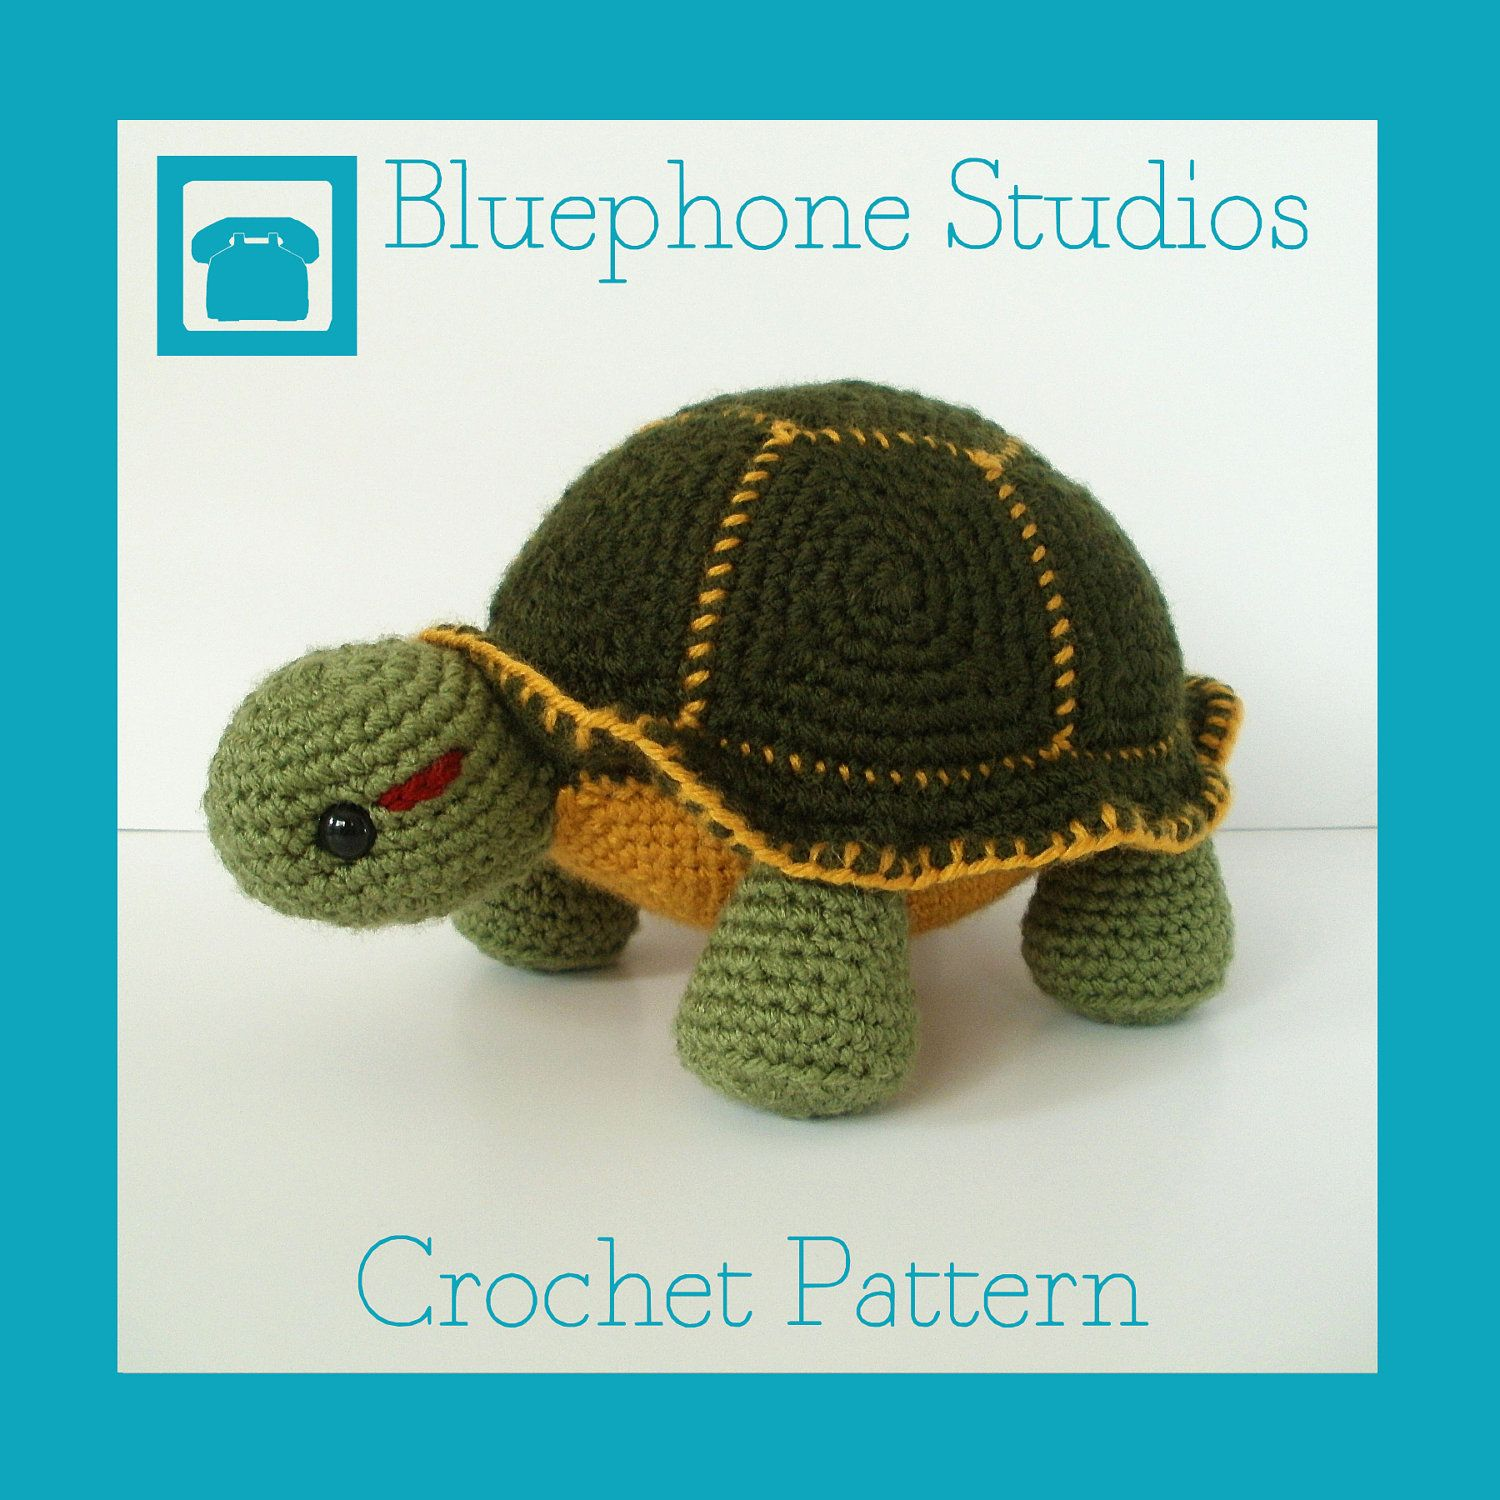 Crochet Pattern Orion the Turtle by BluephoneStudios on Etsy, $5.00